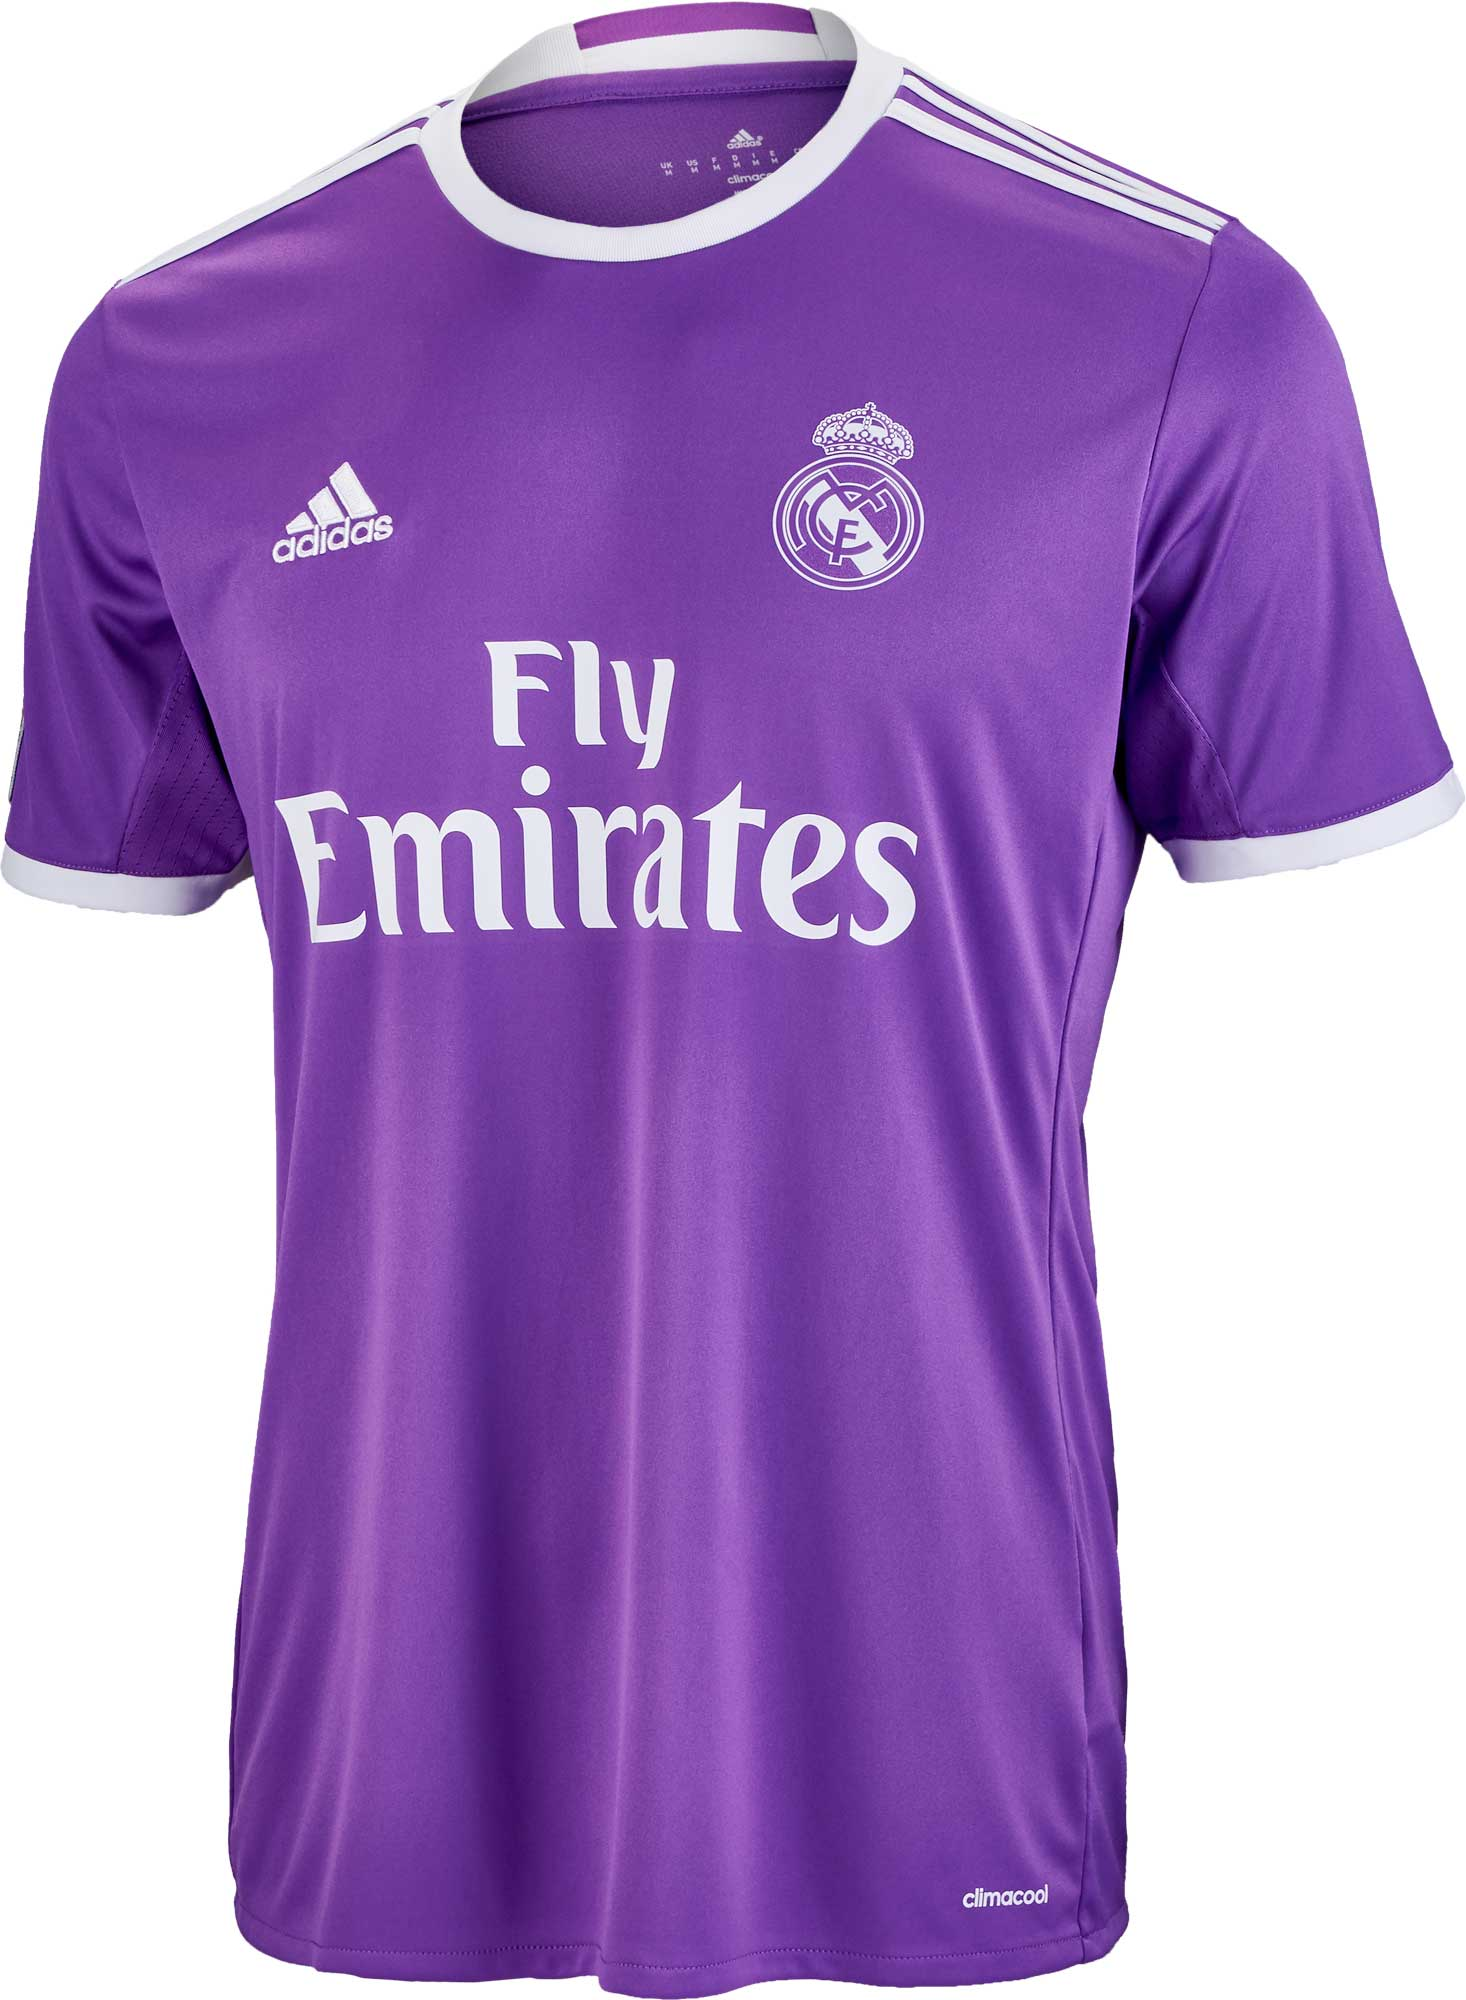 official photos 7a2e0 e489a adidas Kids Real Madrid Jersey - 2016/17 Real Madrid Away ...